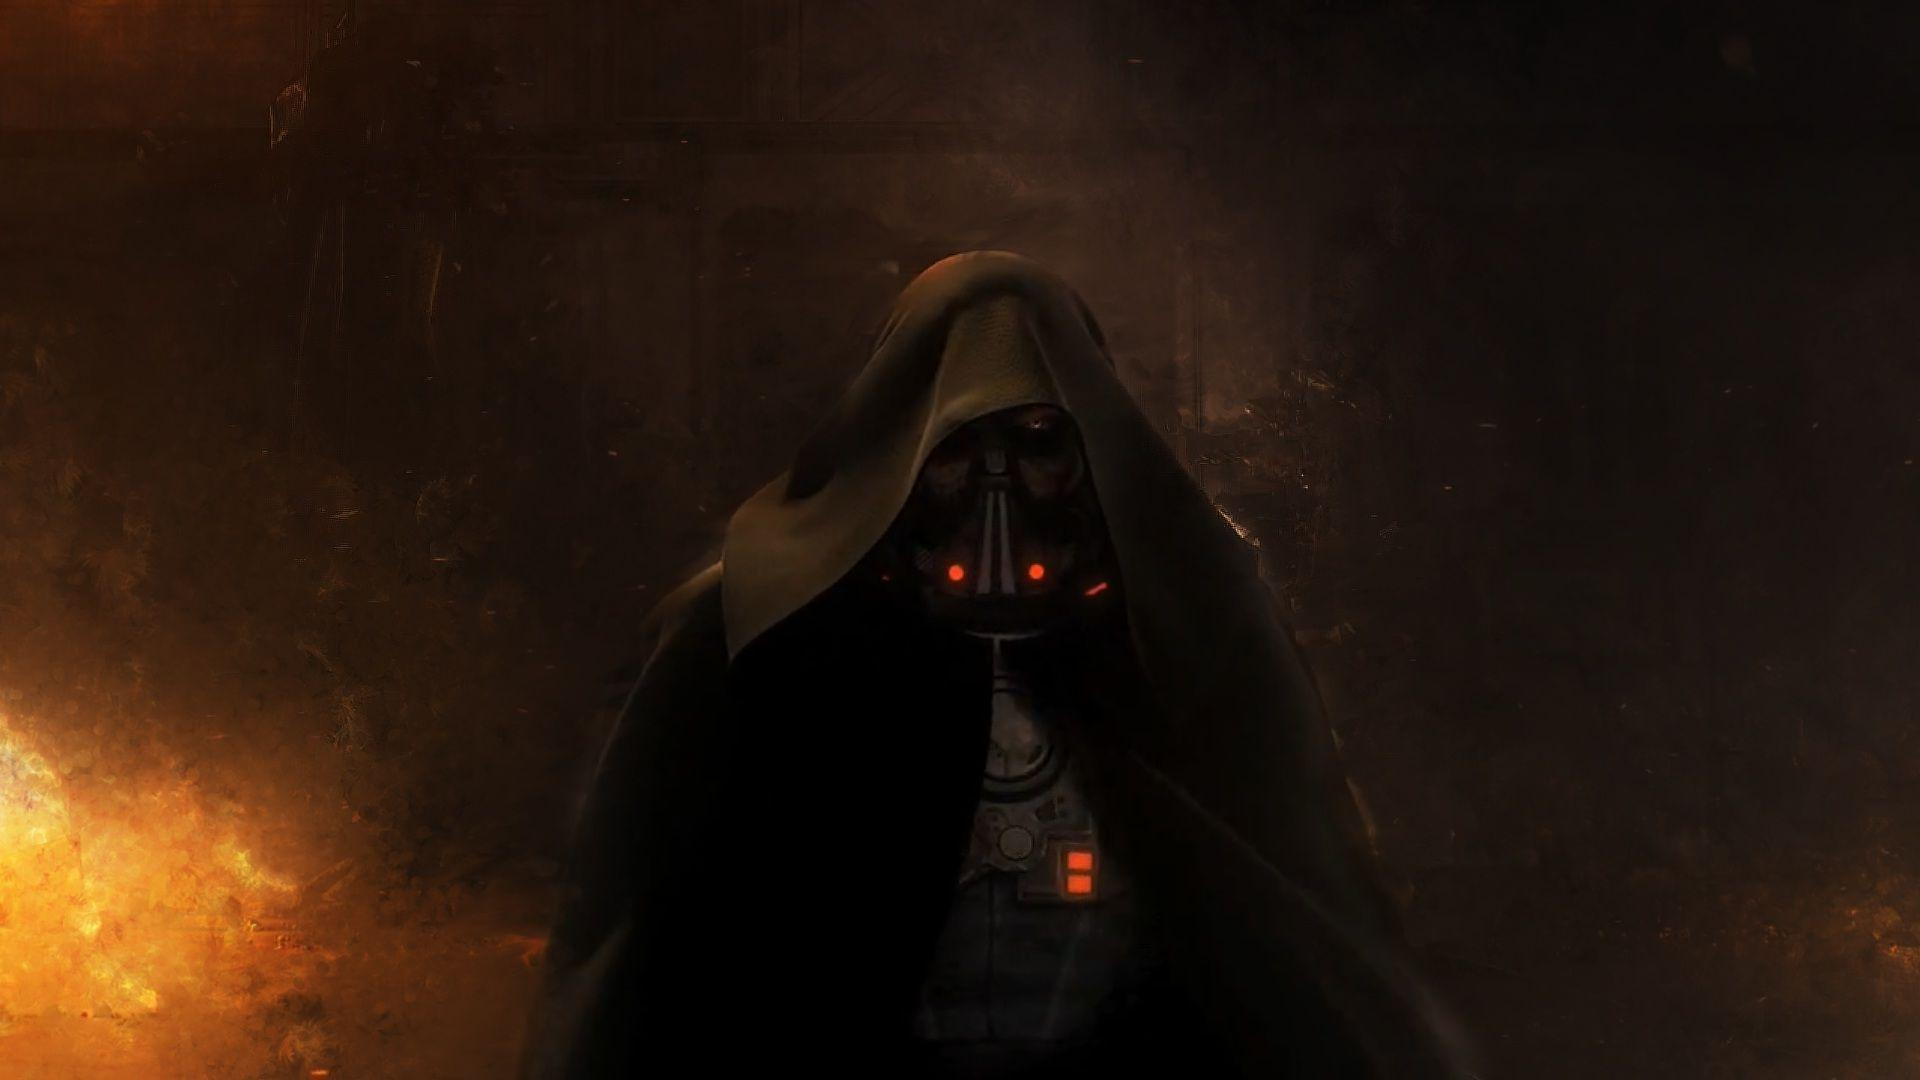 Best 61 Sith Wallpaper On Hipwallpaper Sith Wallpaper Star Wars Sith Wallpaper And Female Sith Wallpaper